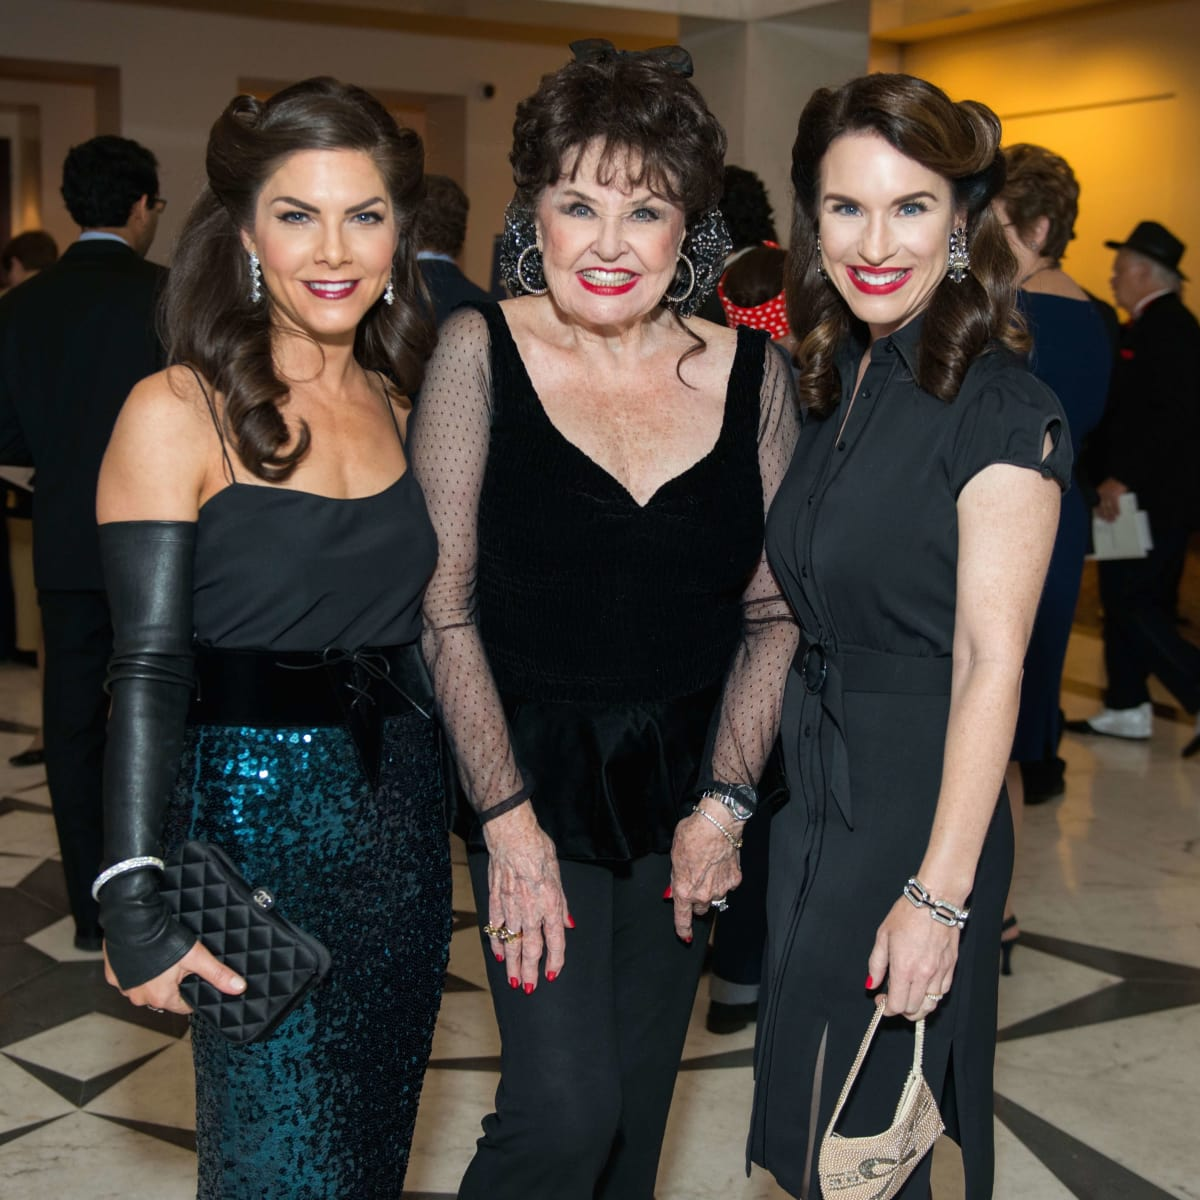 Monica Hartland Blaisdell, Warner Roberts, Samantha Kennedy at Mission of Yahweh gala